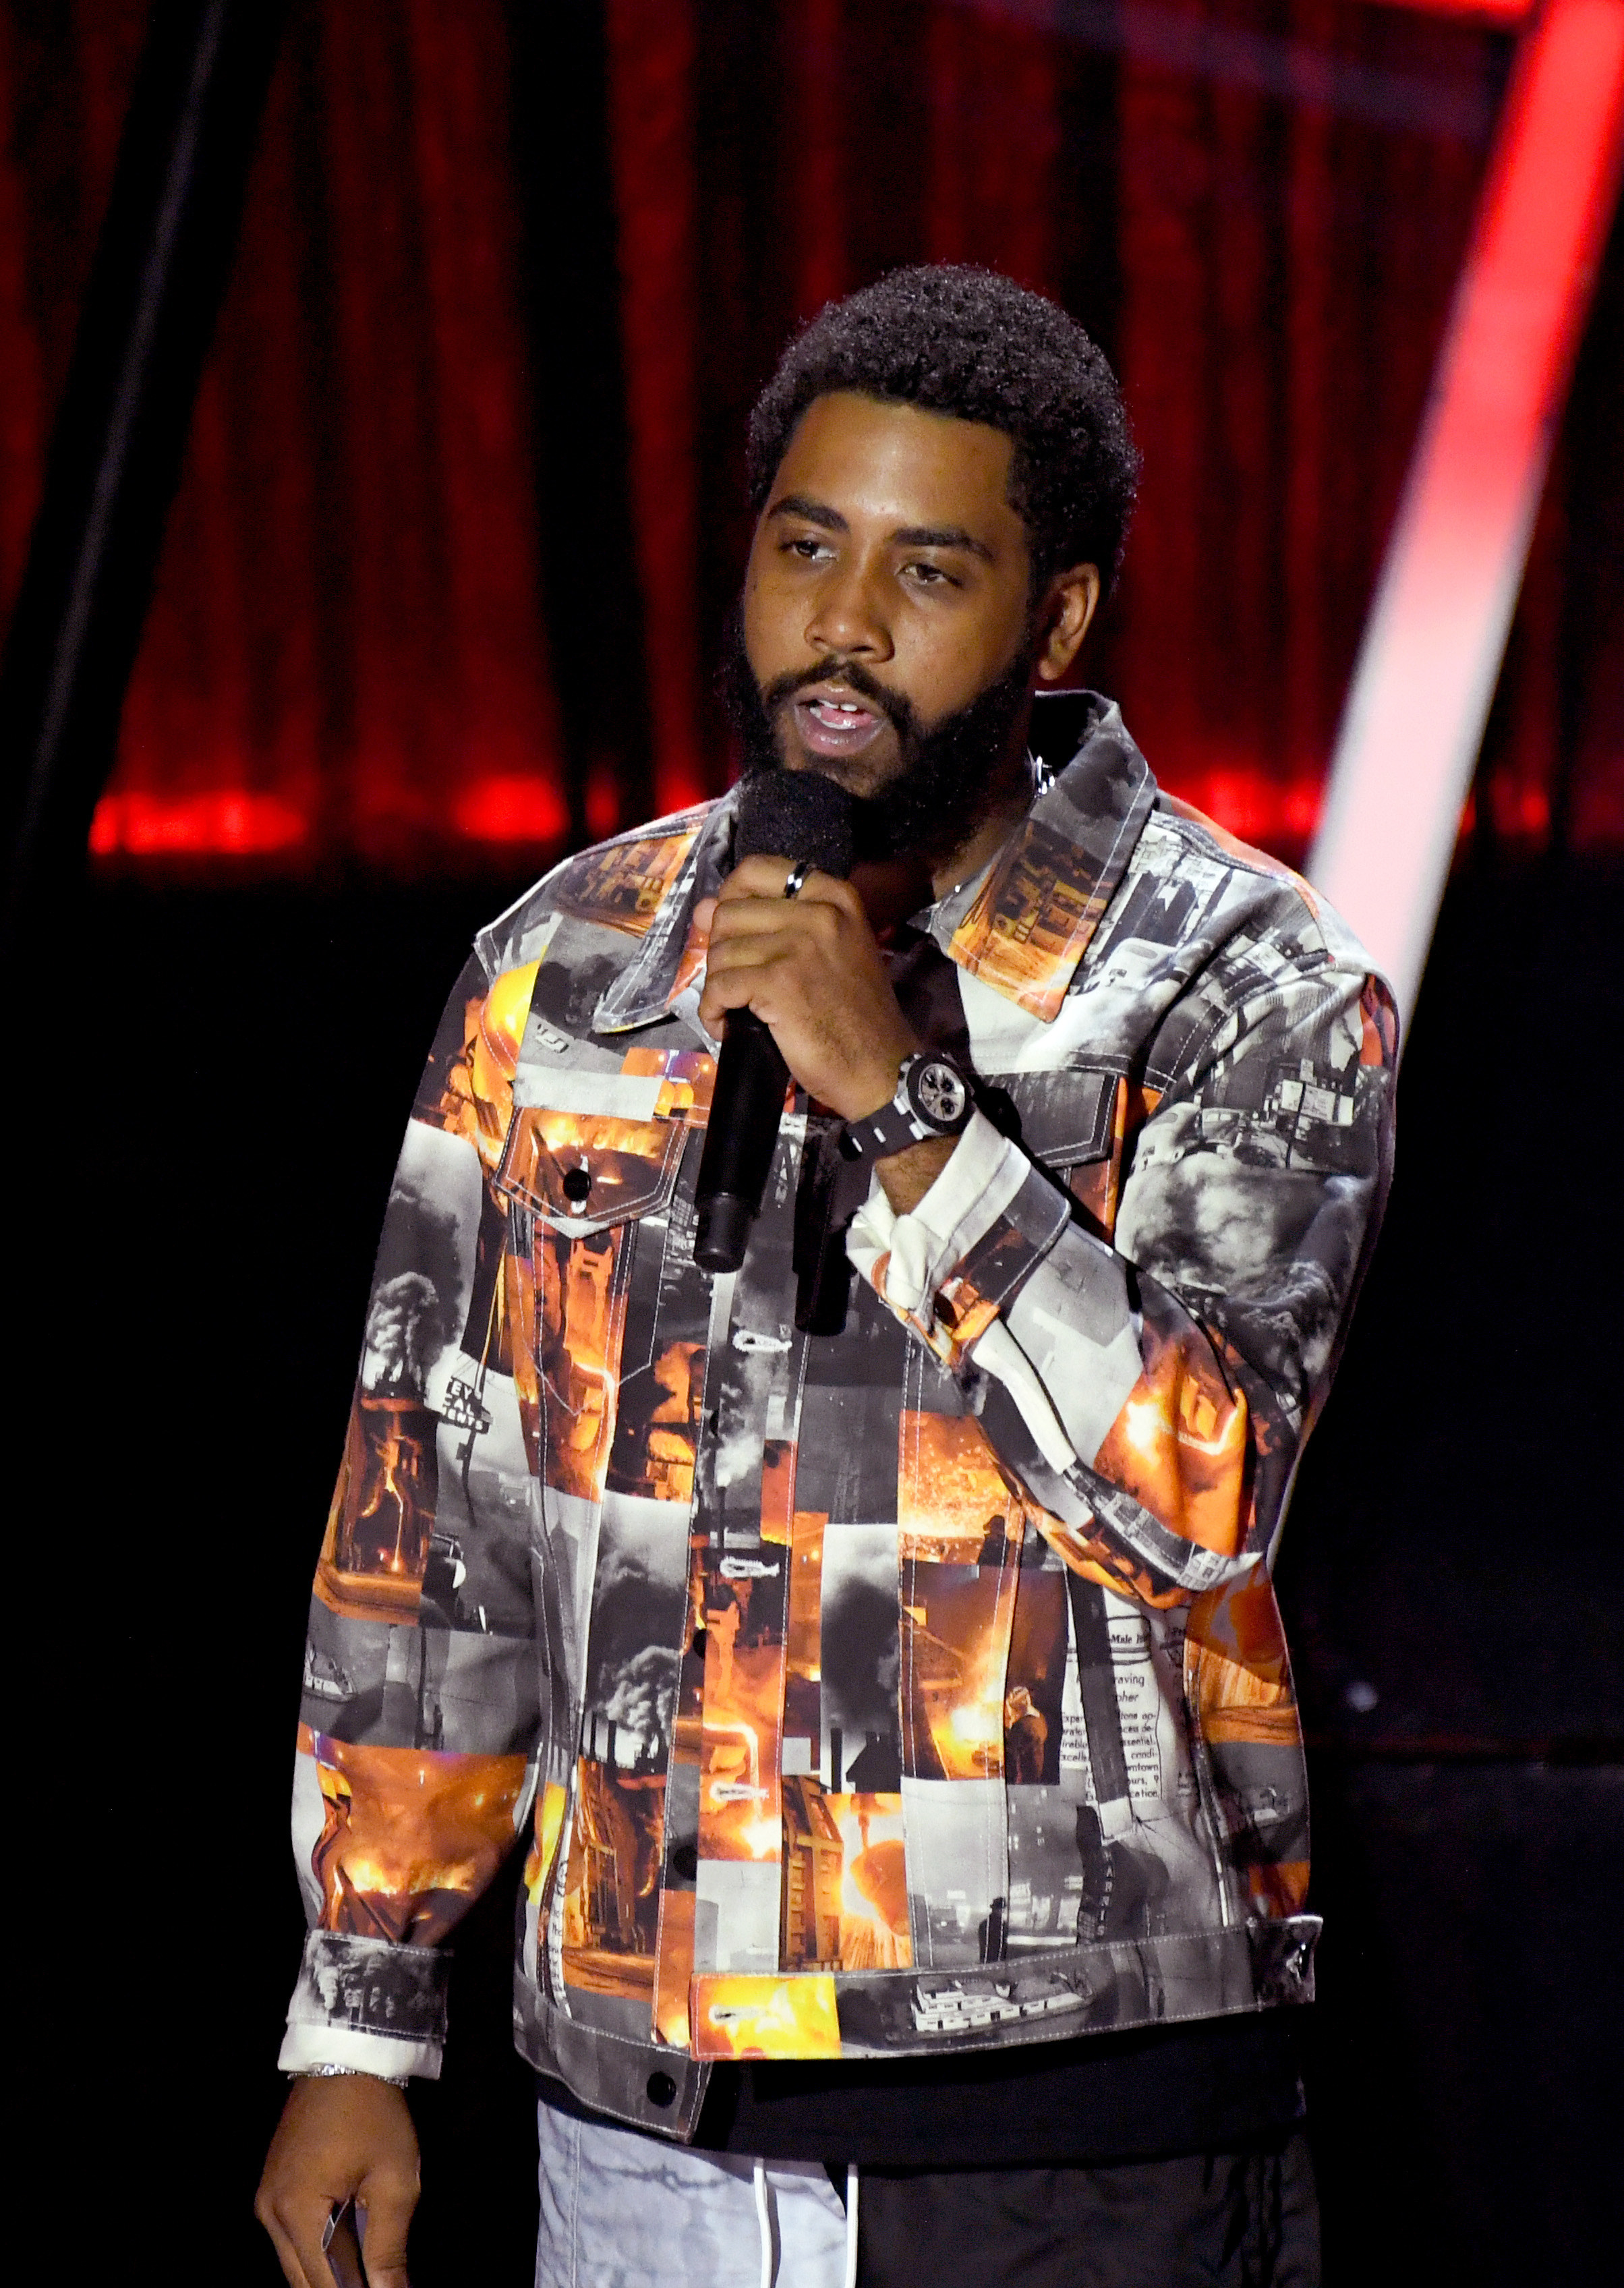 Jharrel Jerome at the 2020 Billboard Music Awards